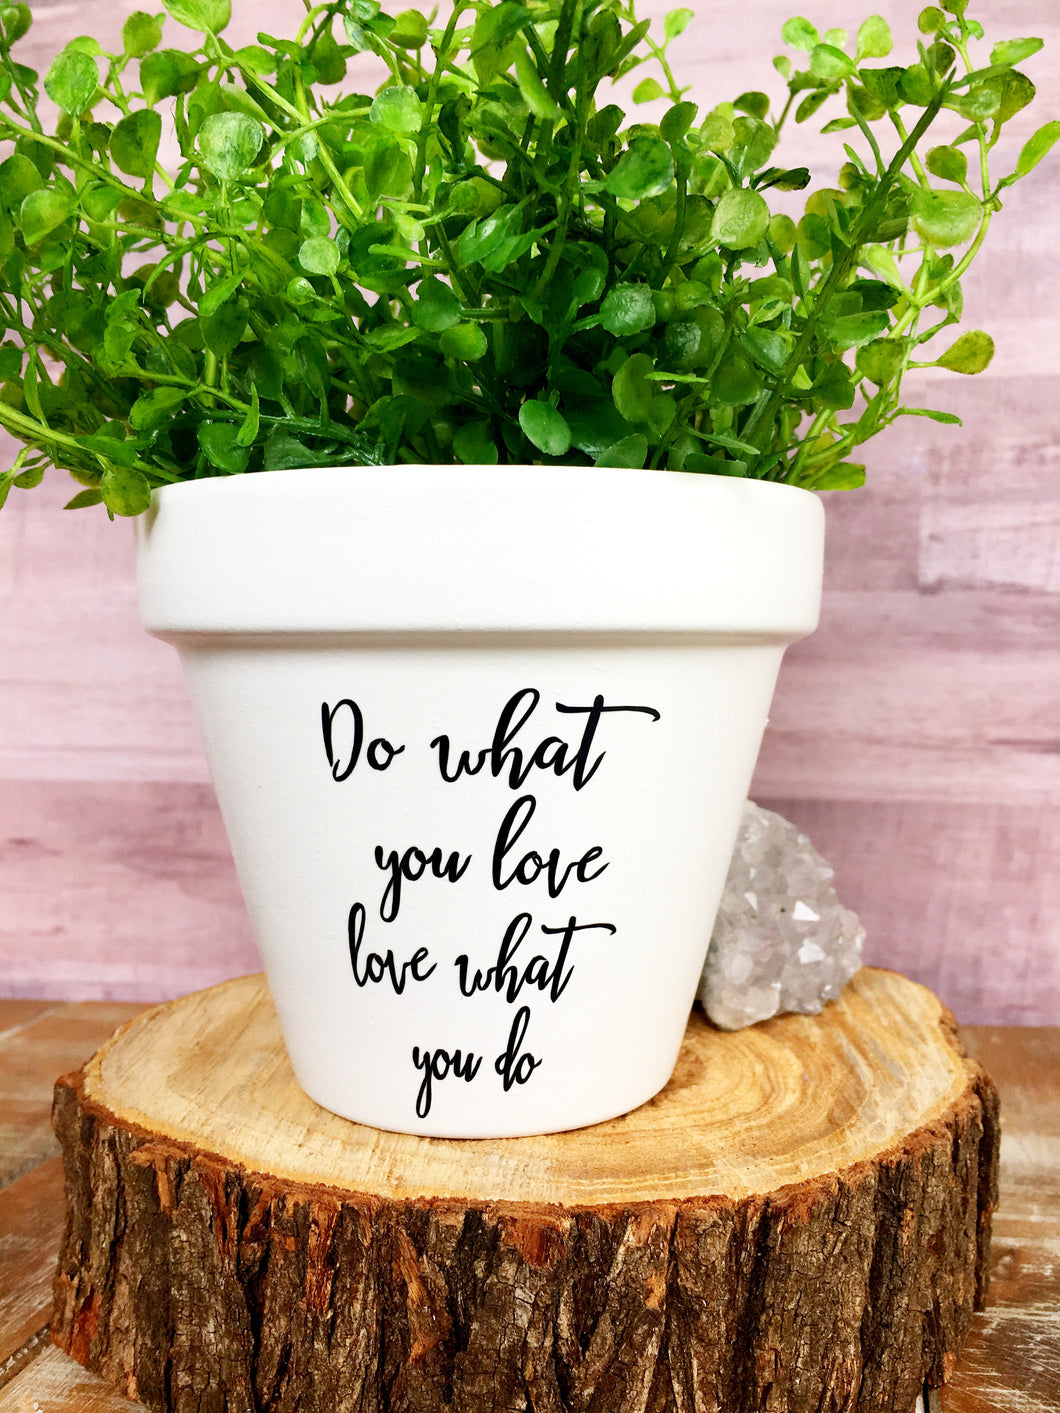 Do What You Love Love What You Do - Do What You Love - Inspirational Message - Cute Flower Pot - Personalized Pot - Knox Pots - Knox Pot